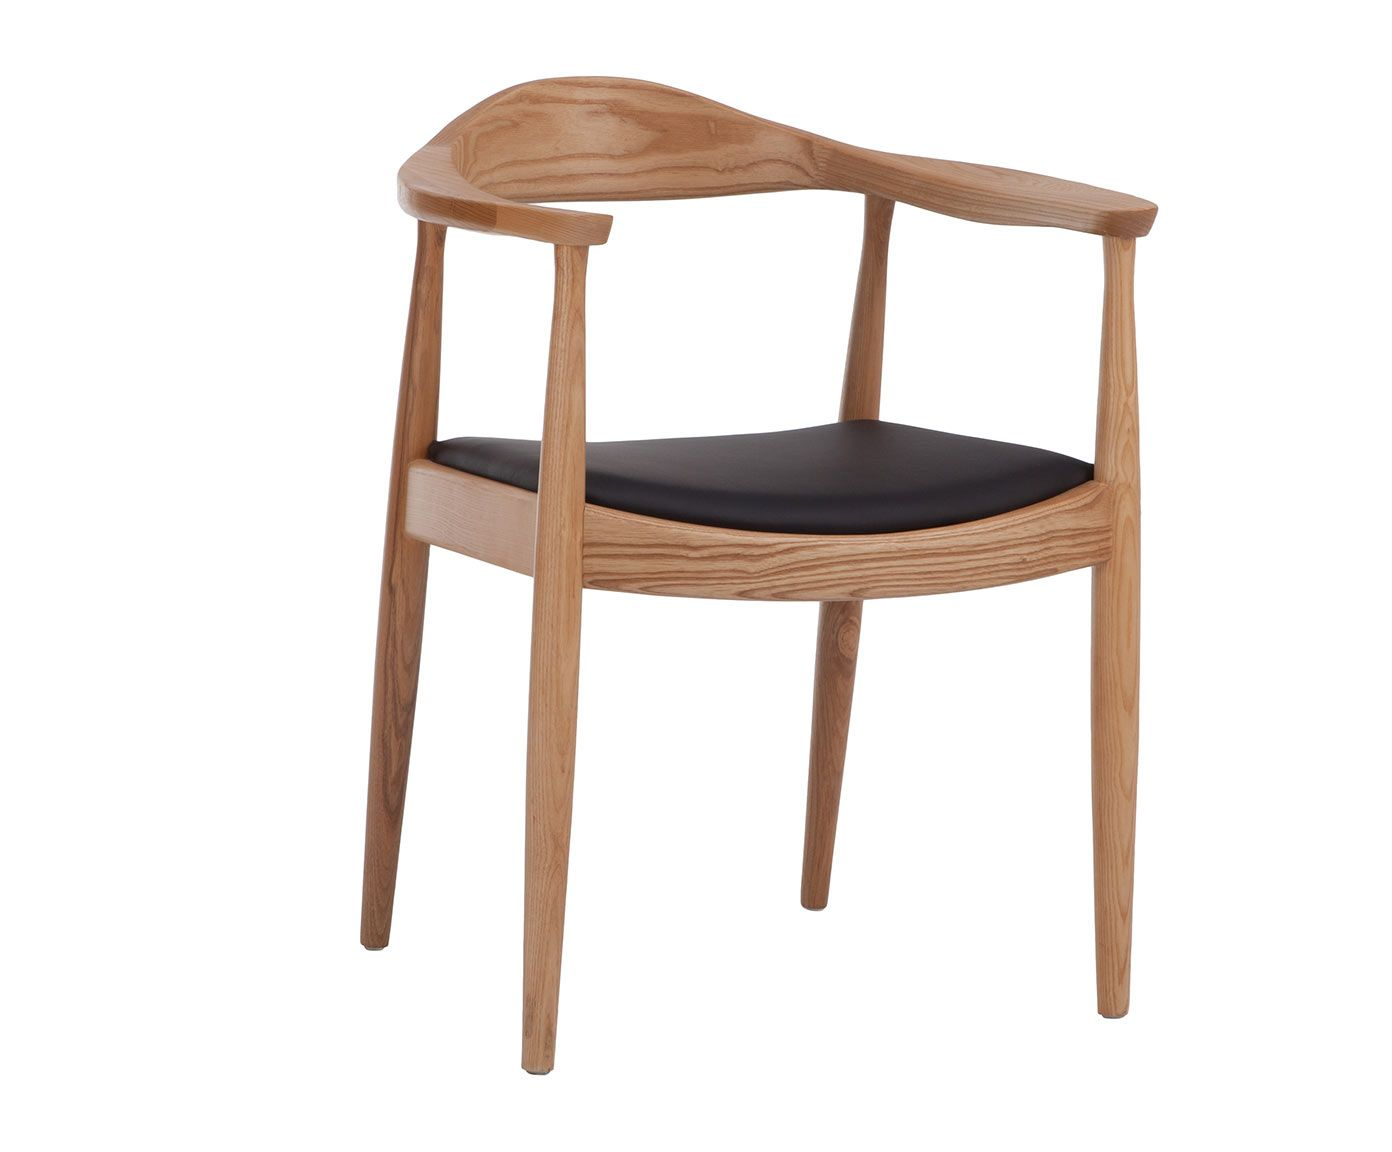 Silla en madera de fresno negro y natural westwing home living chair pinterest - Westwing sillas ...